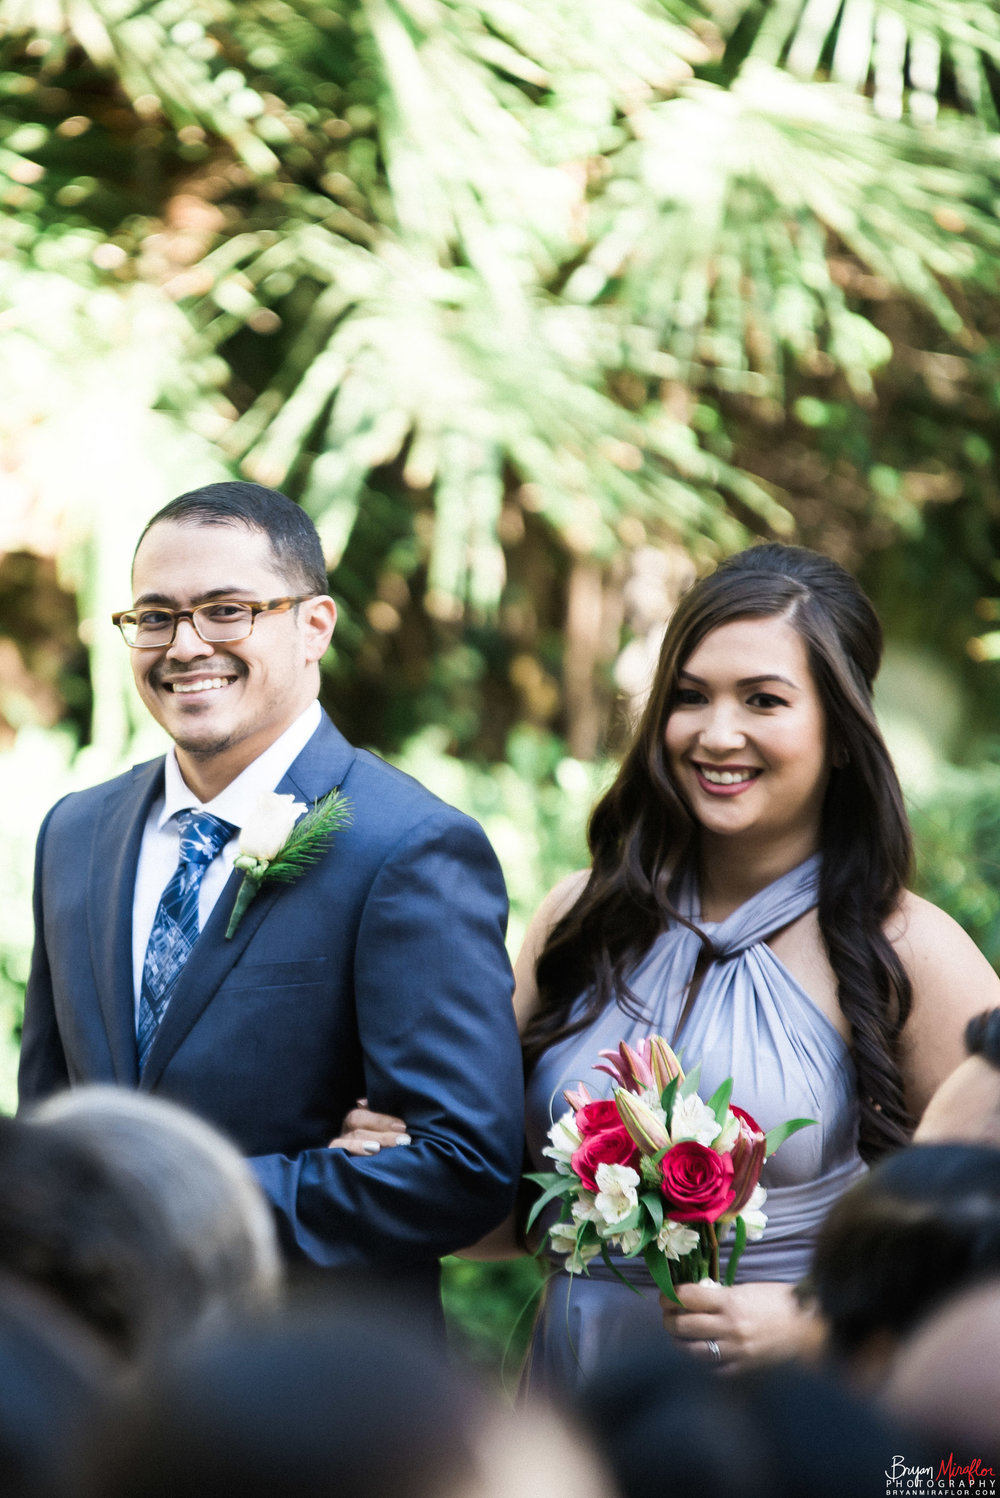 Bryan-Miraflor-Photography-Hannah-Jonathan-Married-Grand-Traditions-Estate-Gardens-Fallbrook-20171222-084.jpg